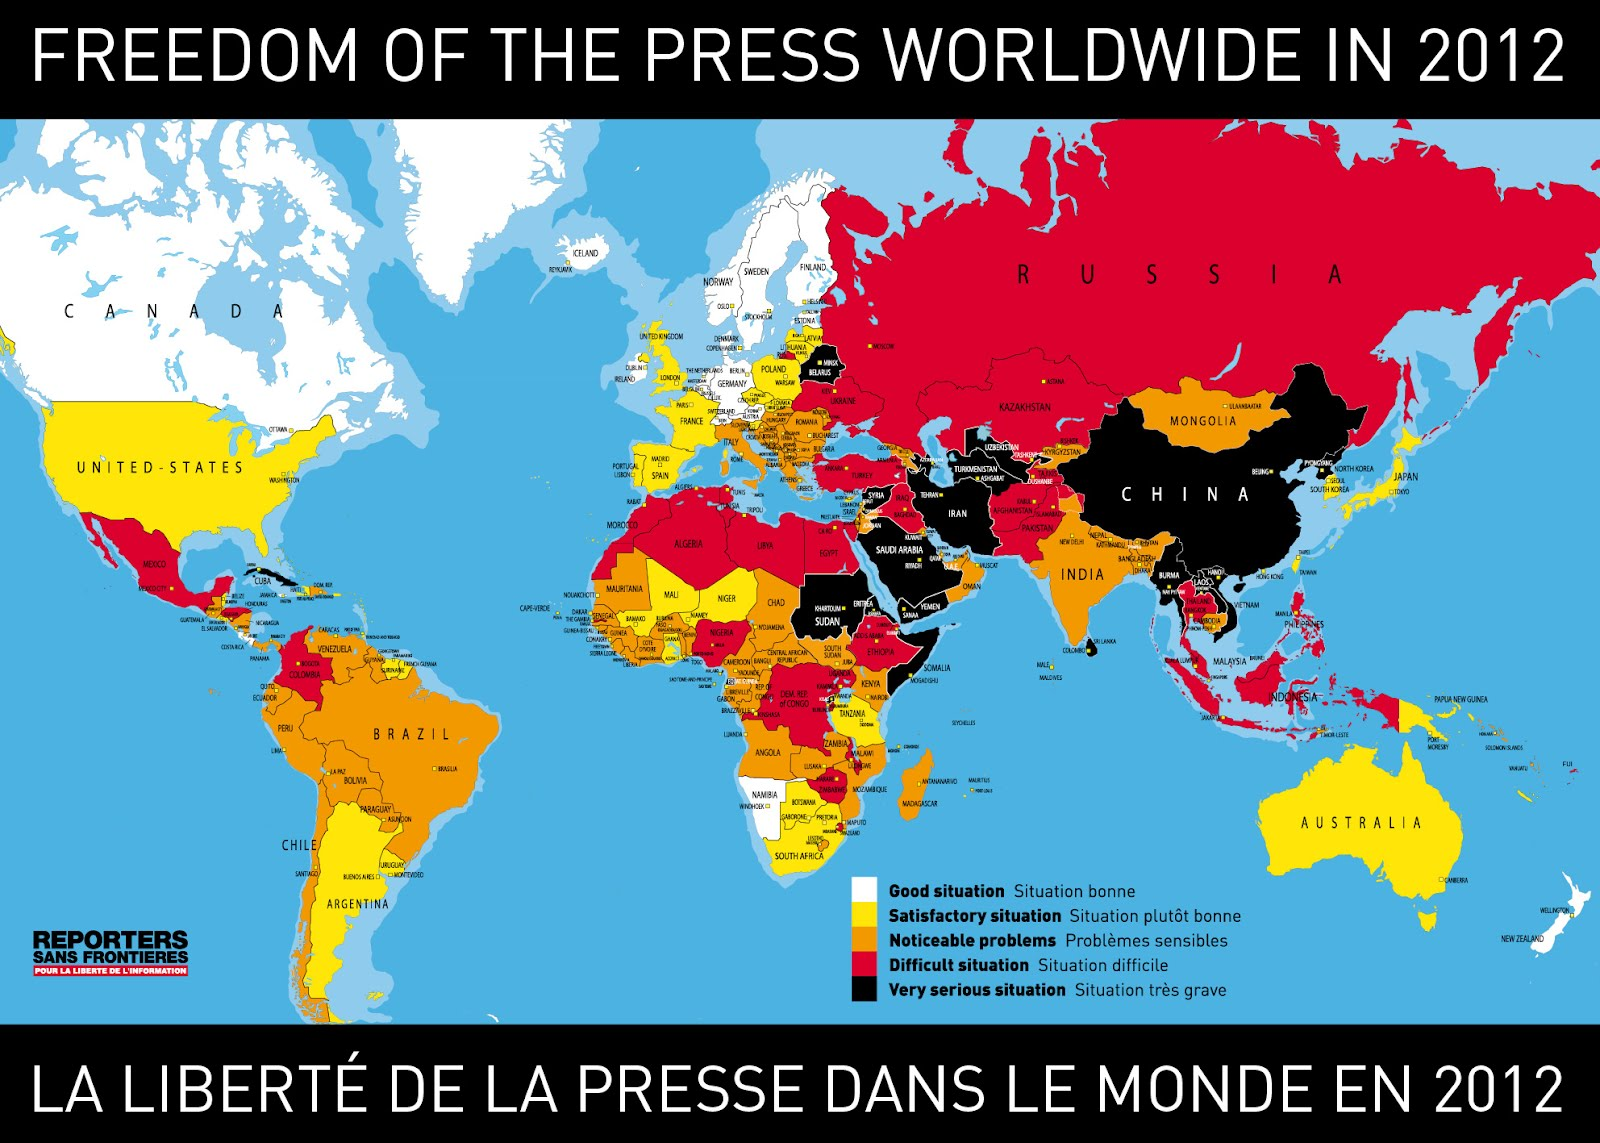 WORLD PRESS FREEDOM INDEX 2012